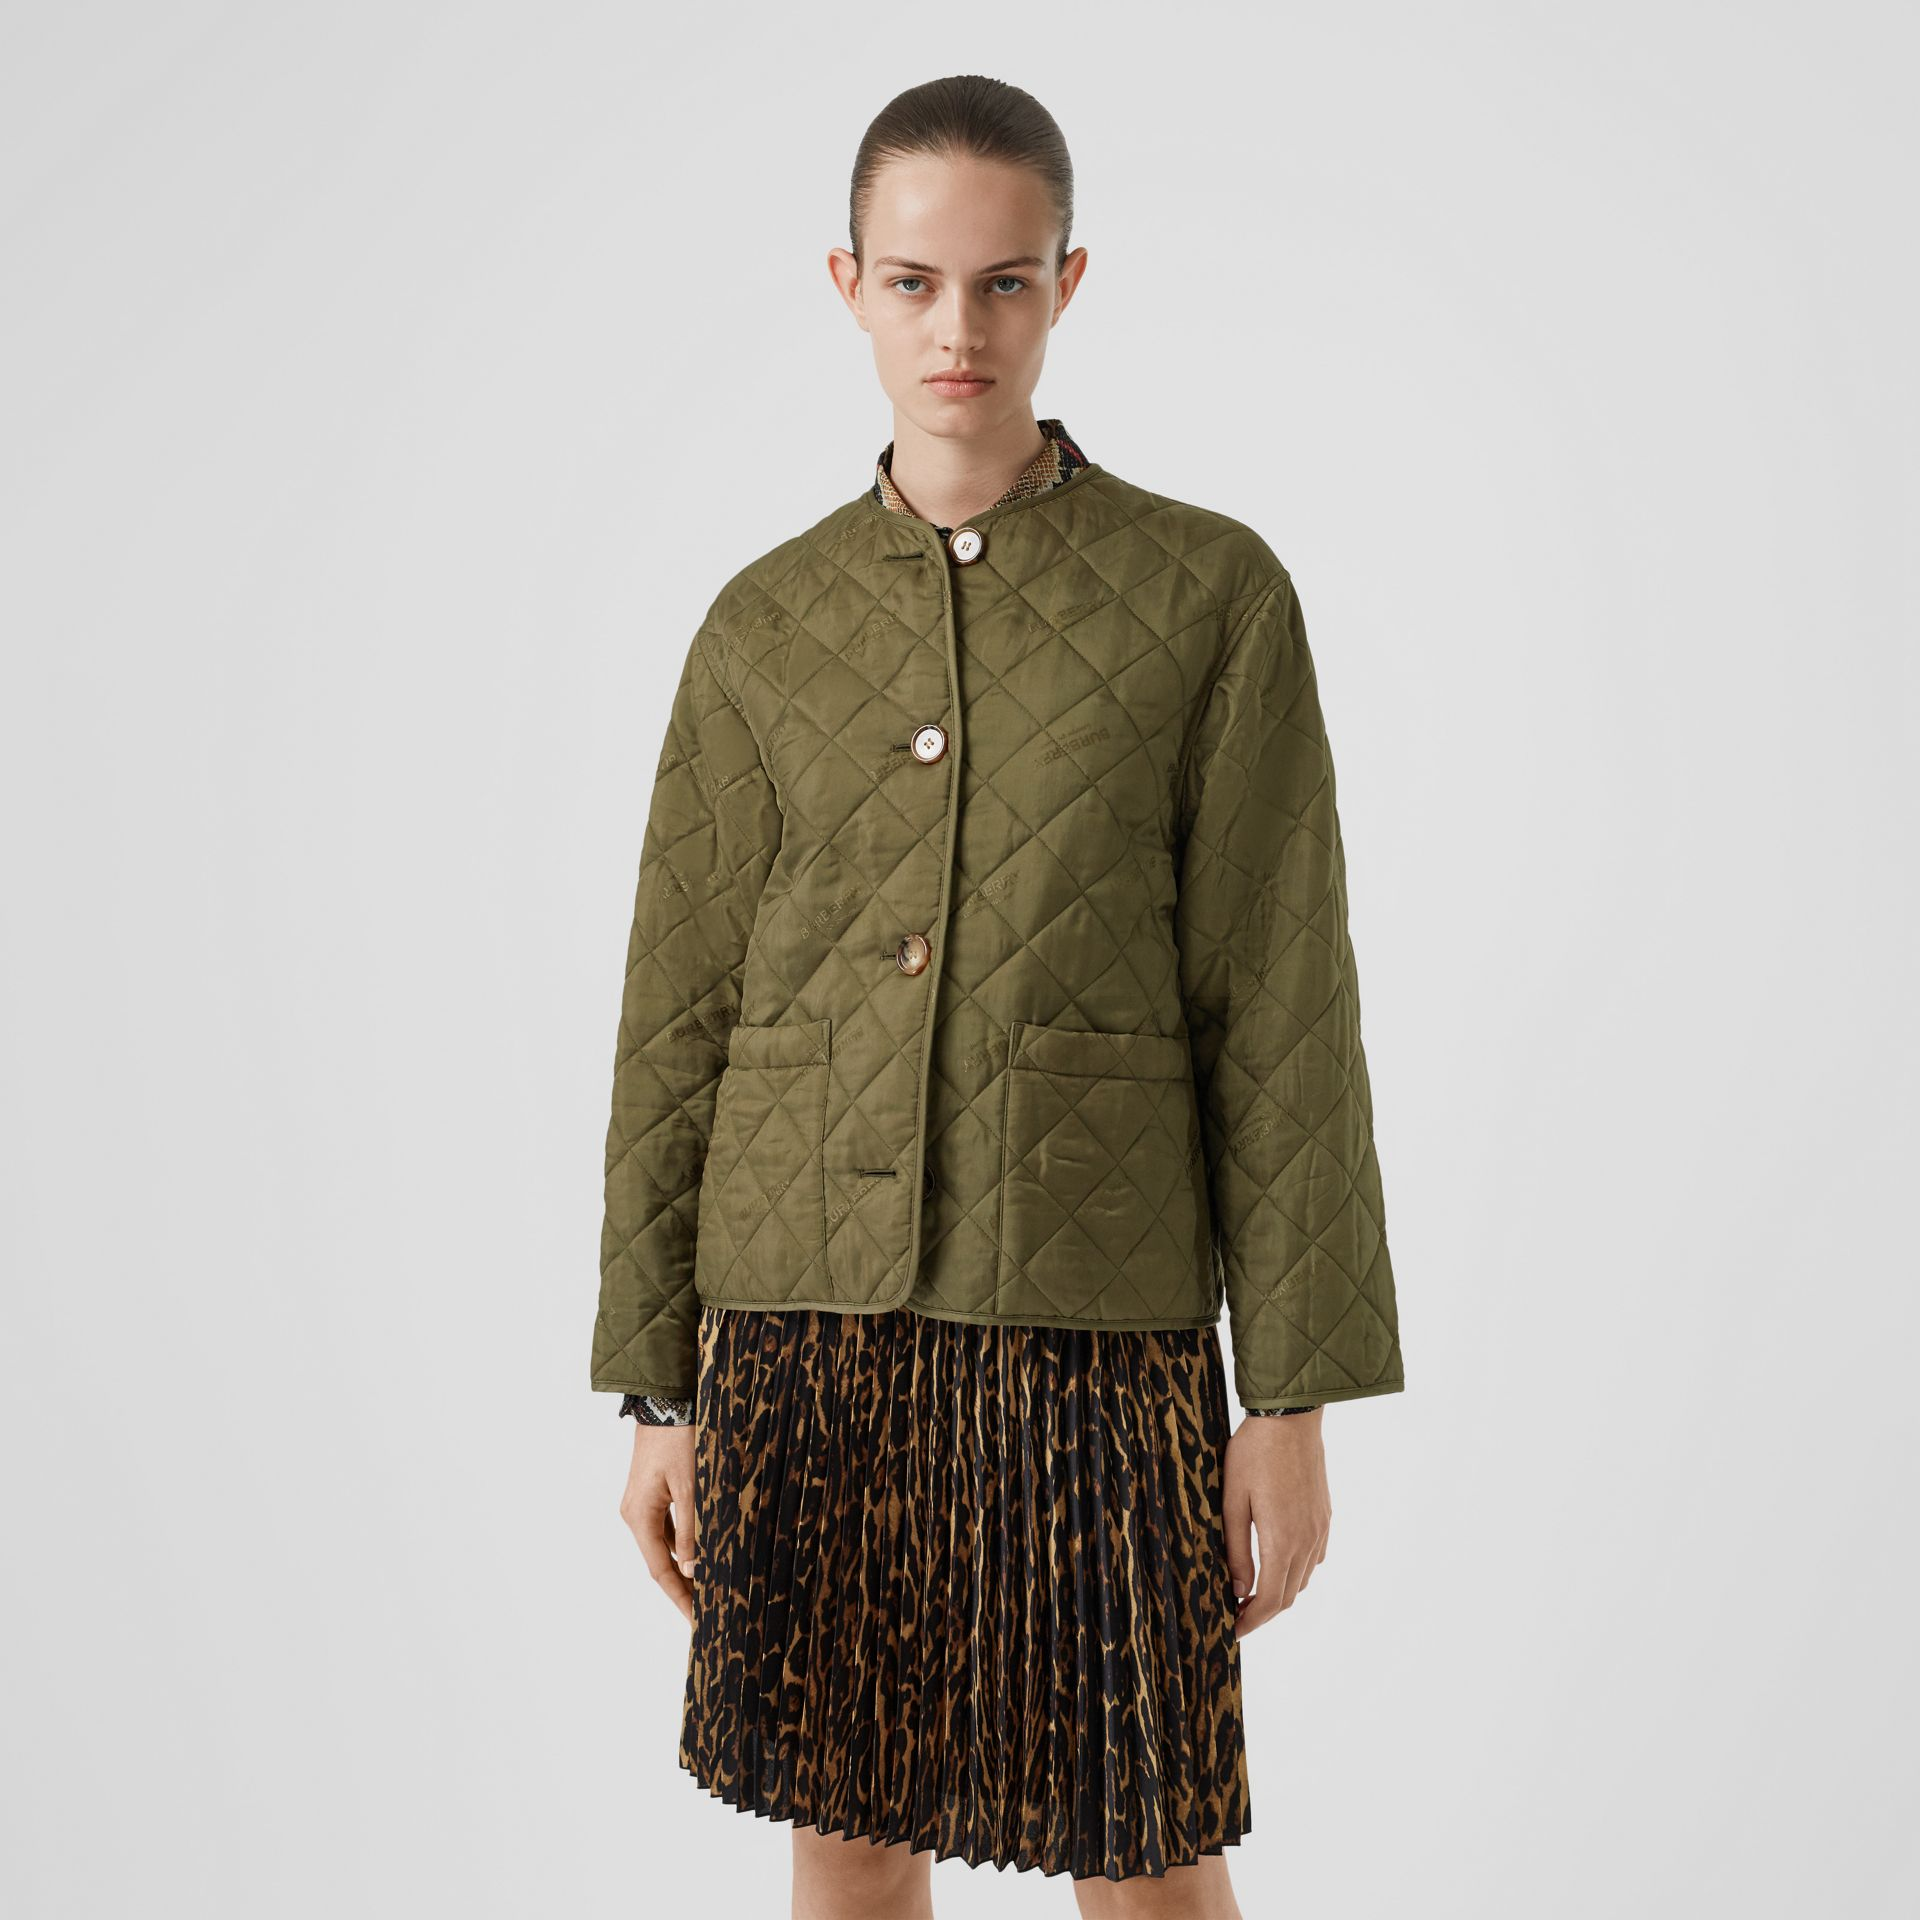 Logo Jacquard Diamond Quilted Jacket in Olive - Women | Burberry - gallery image 5